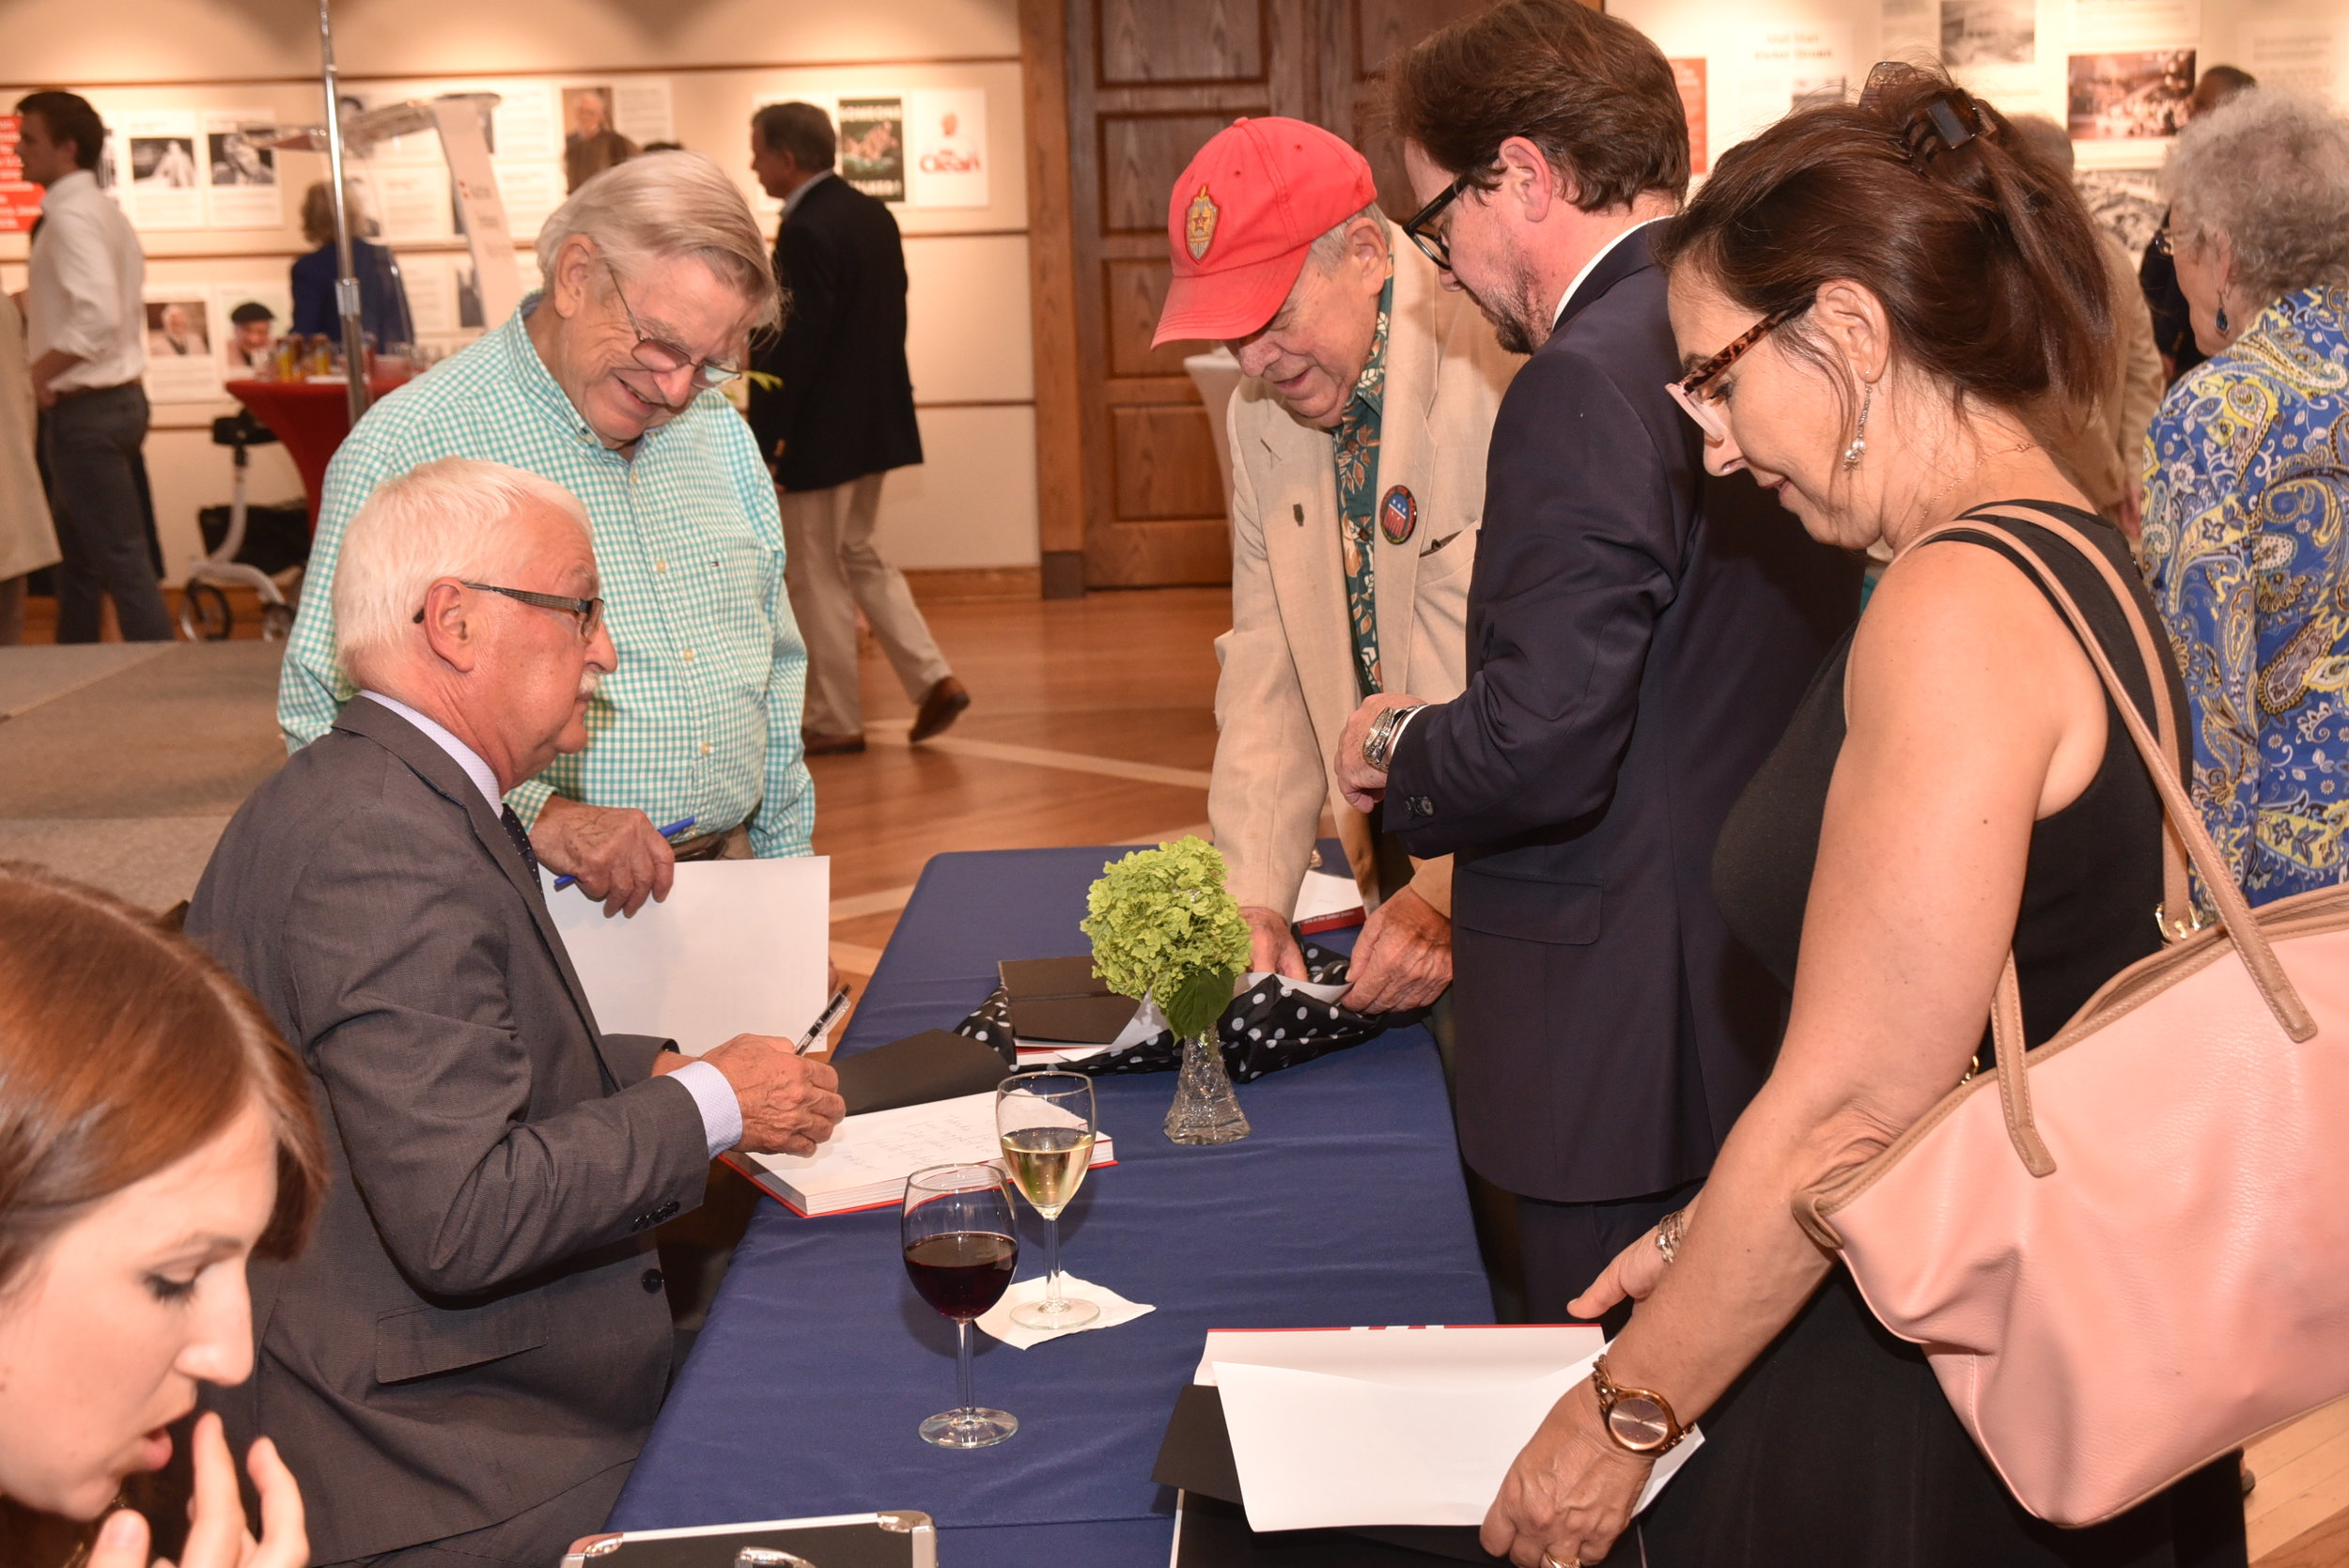 Professor Bischof signs books for guests.   Photo: Lenore Boulet